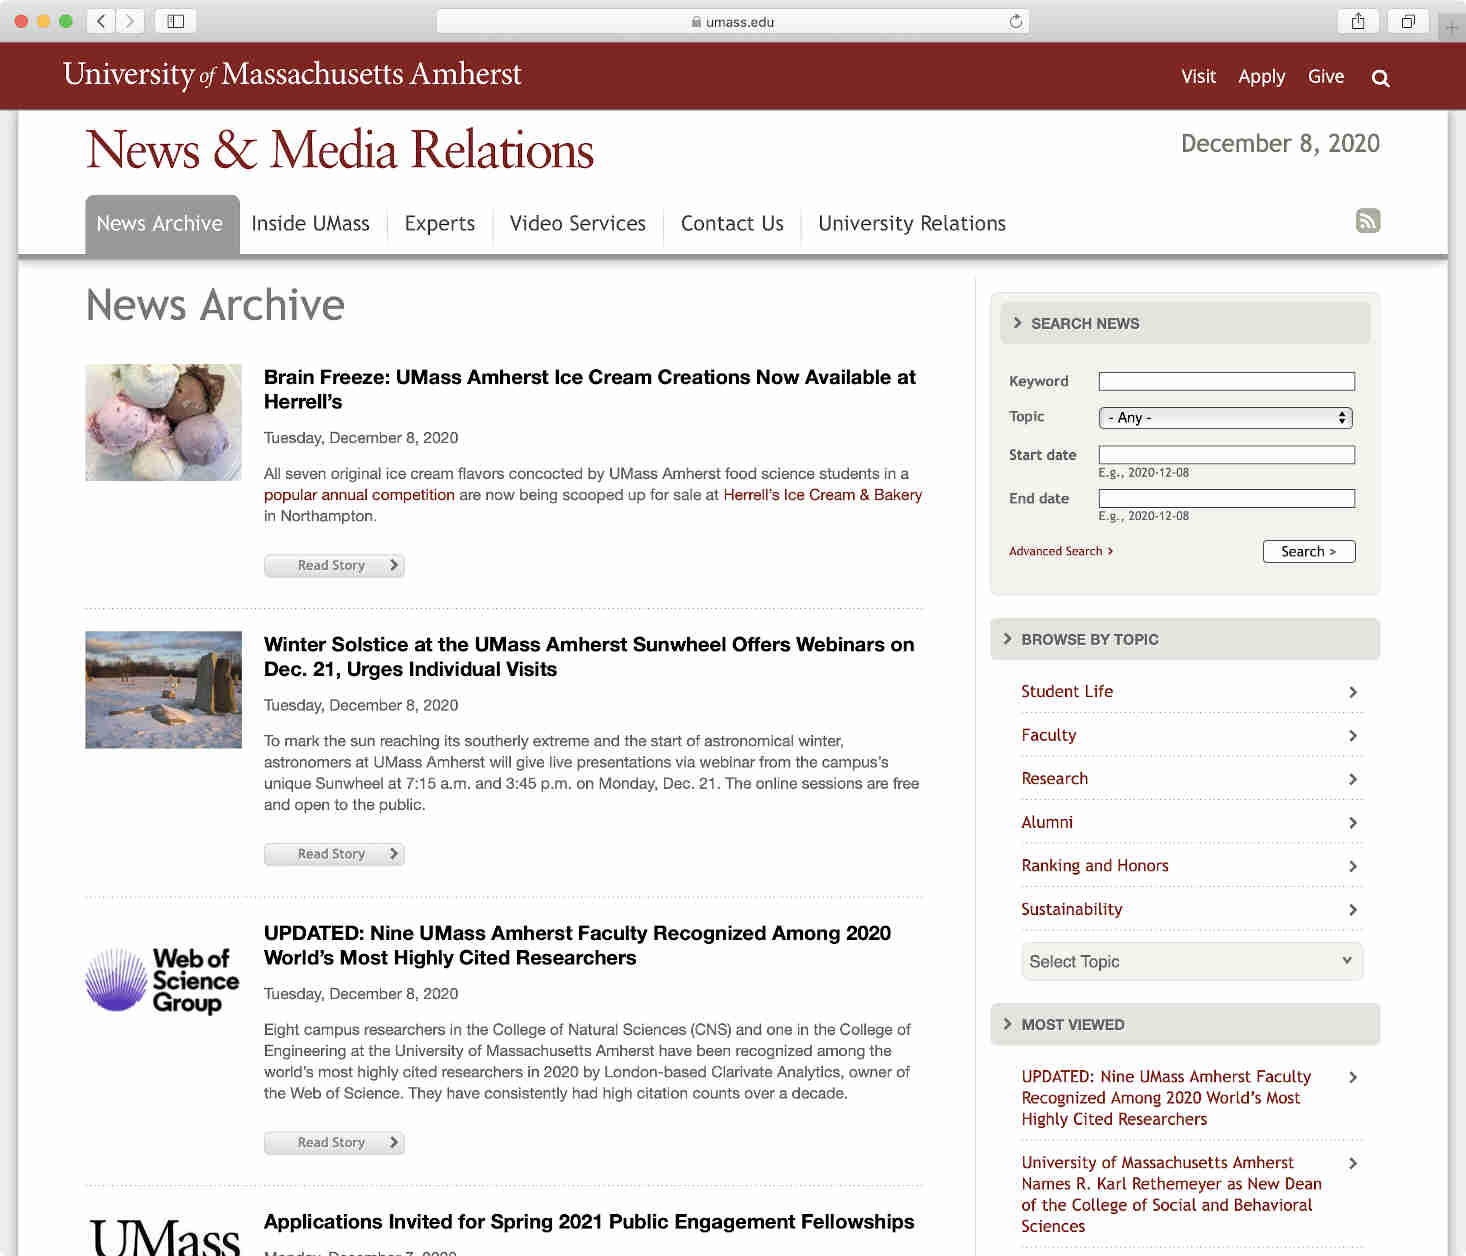 UMass News Archive search page